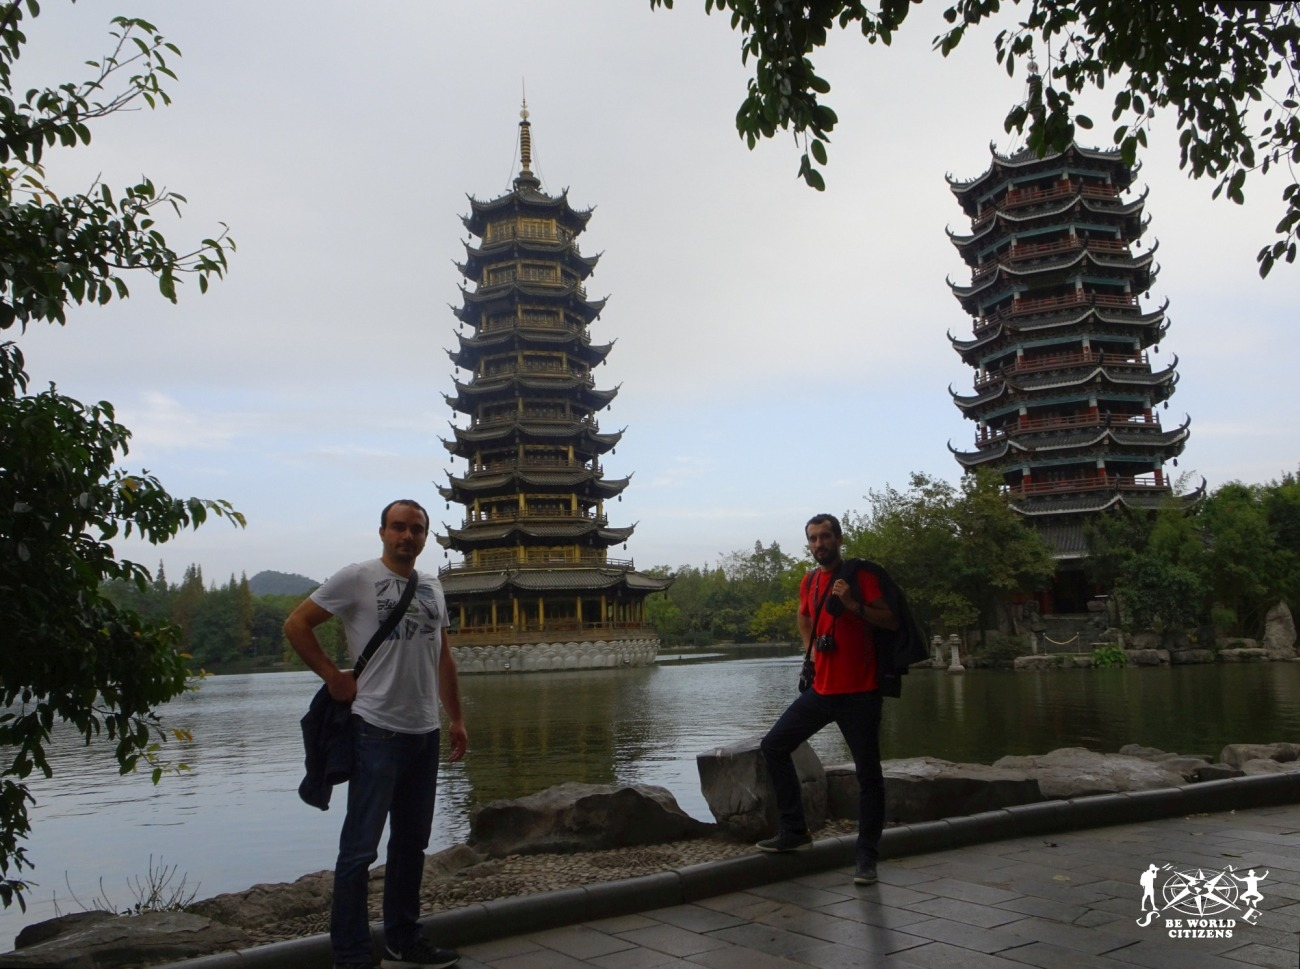 Guilin: Pagoda di sole e luna